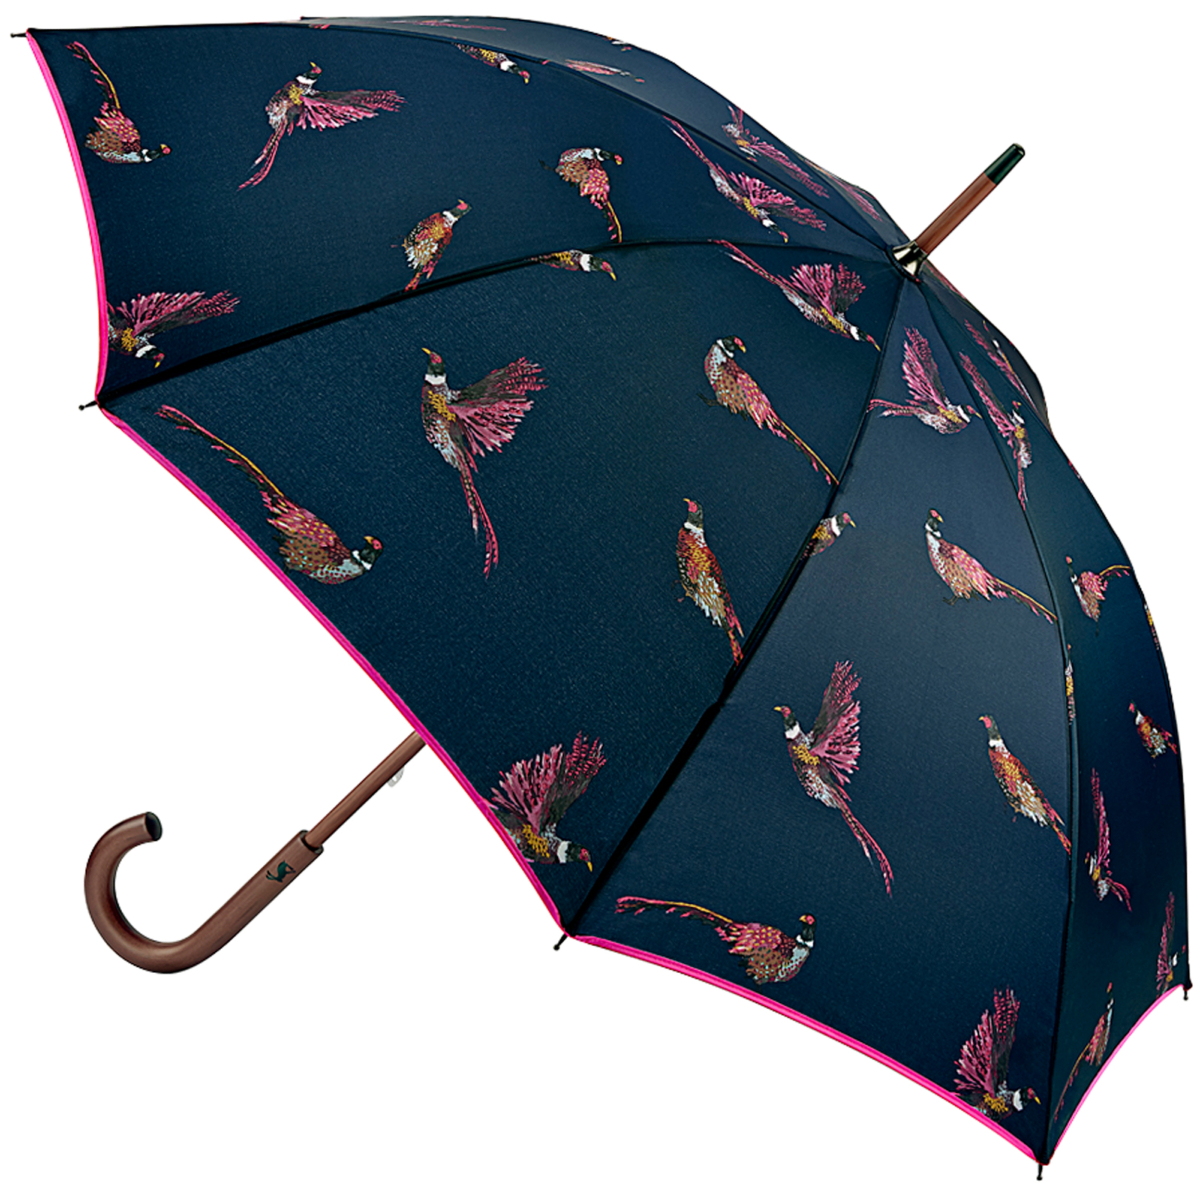 Joules Kensington Umbrella - Pheasant